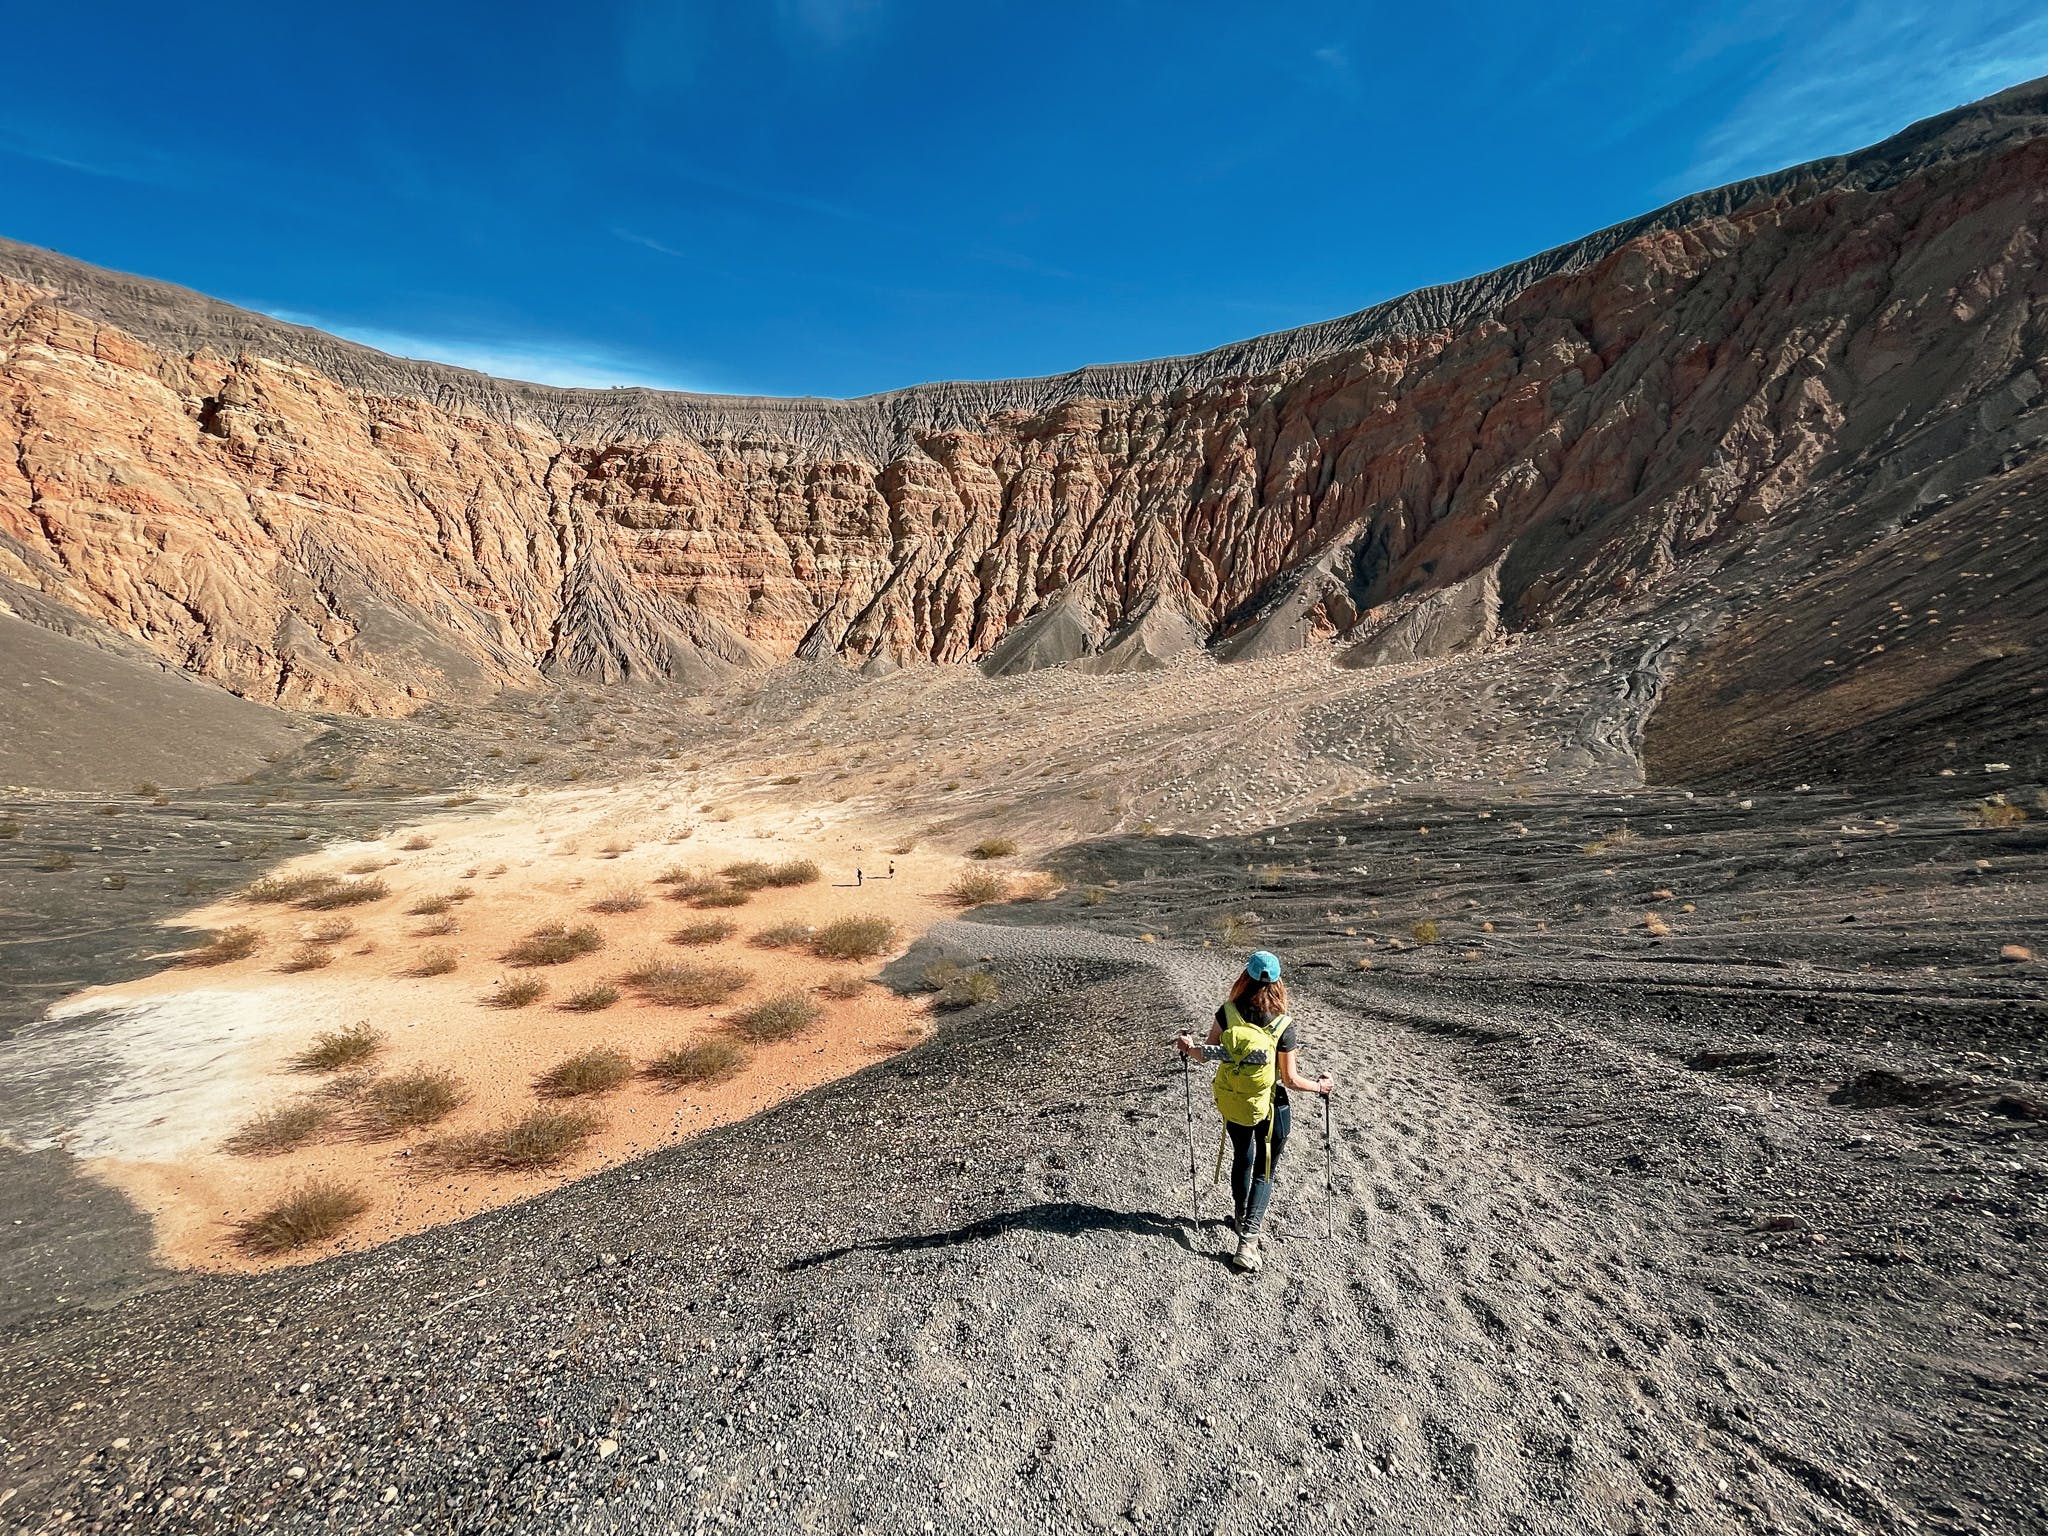 Woman at the bottom of Ubehebe Crater in Death Valley National Park